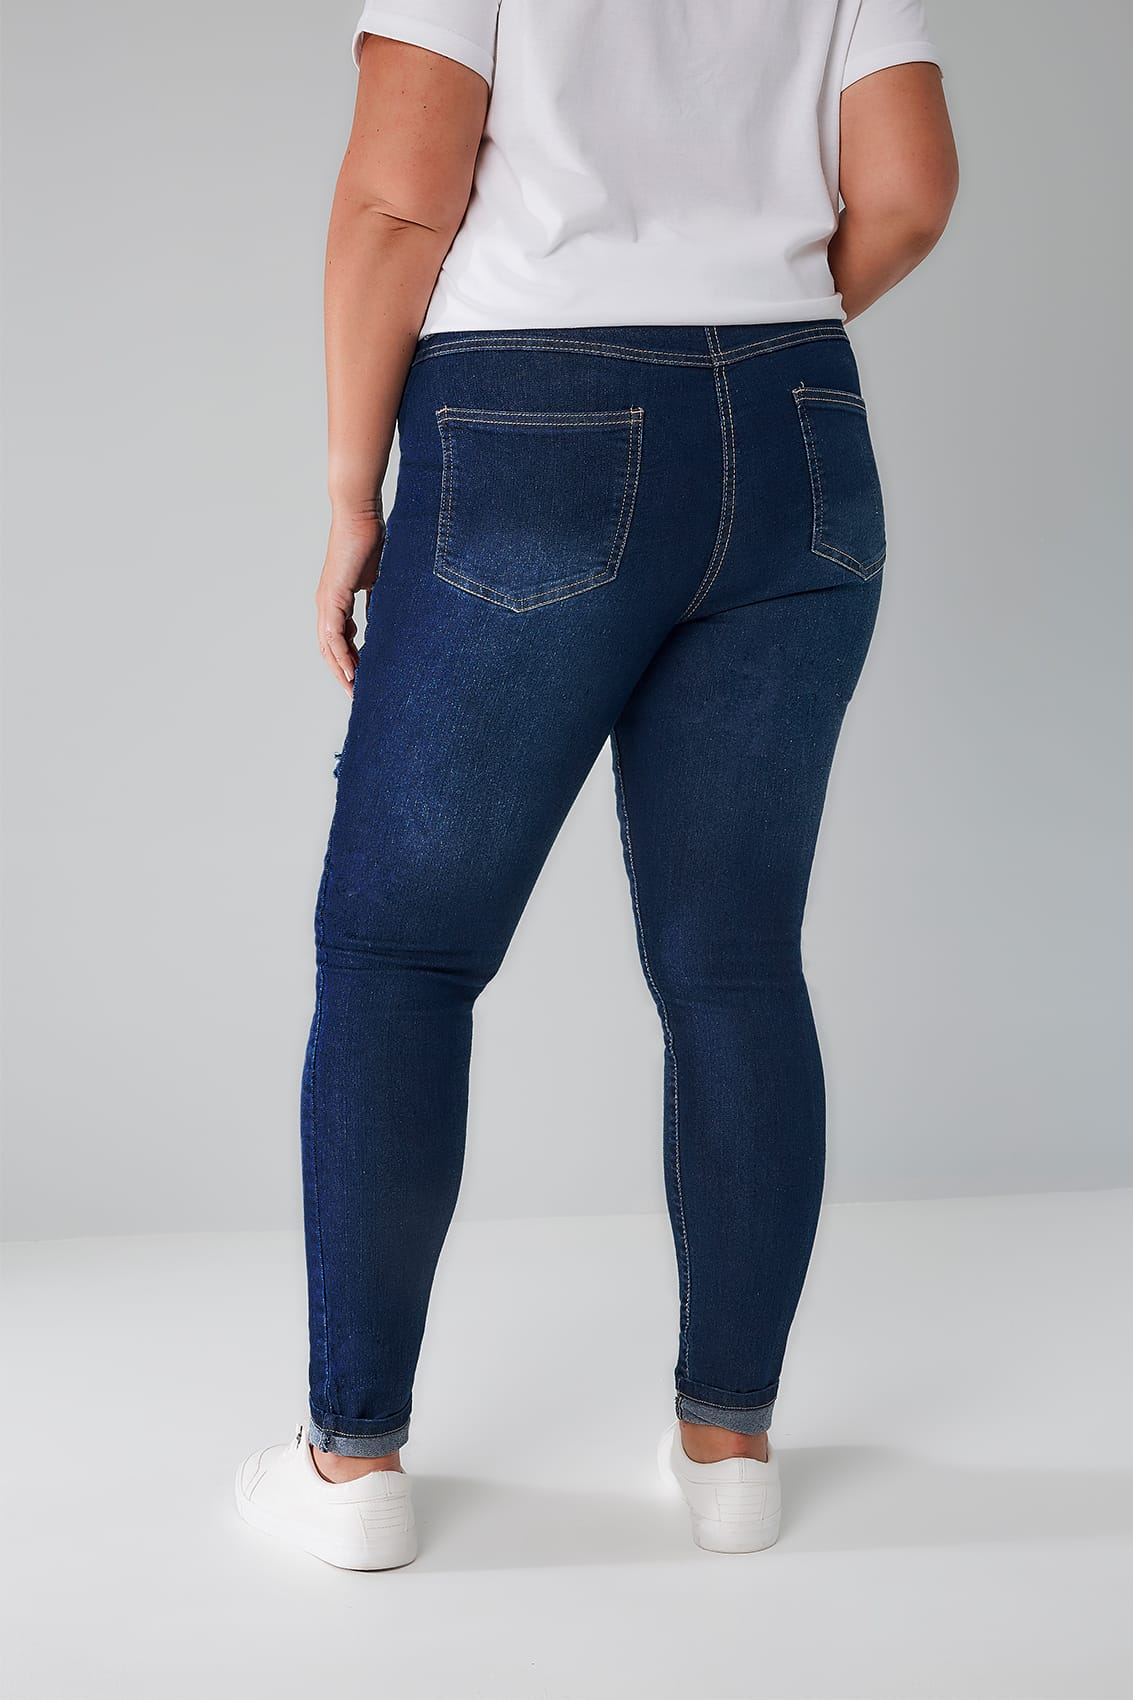 Limited Collection Blaue Skinny Jeans Mit Pailletten Detail